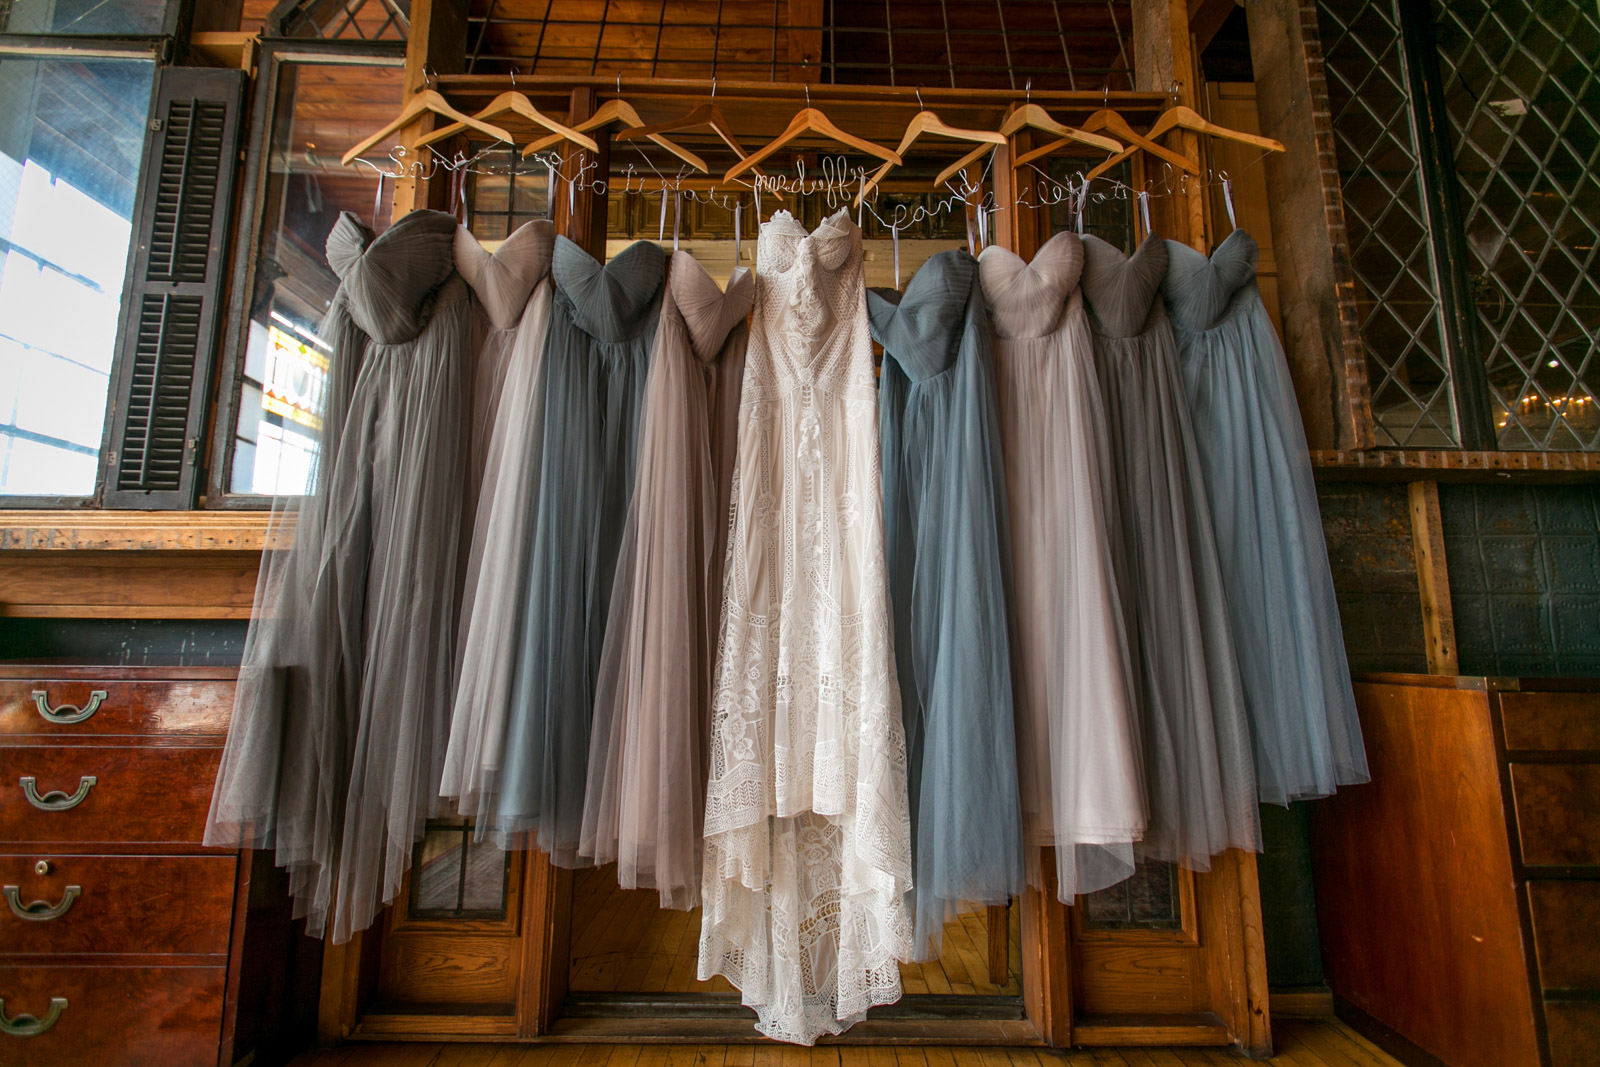 Bridesmaids Dresses hanging at Salvage One